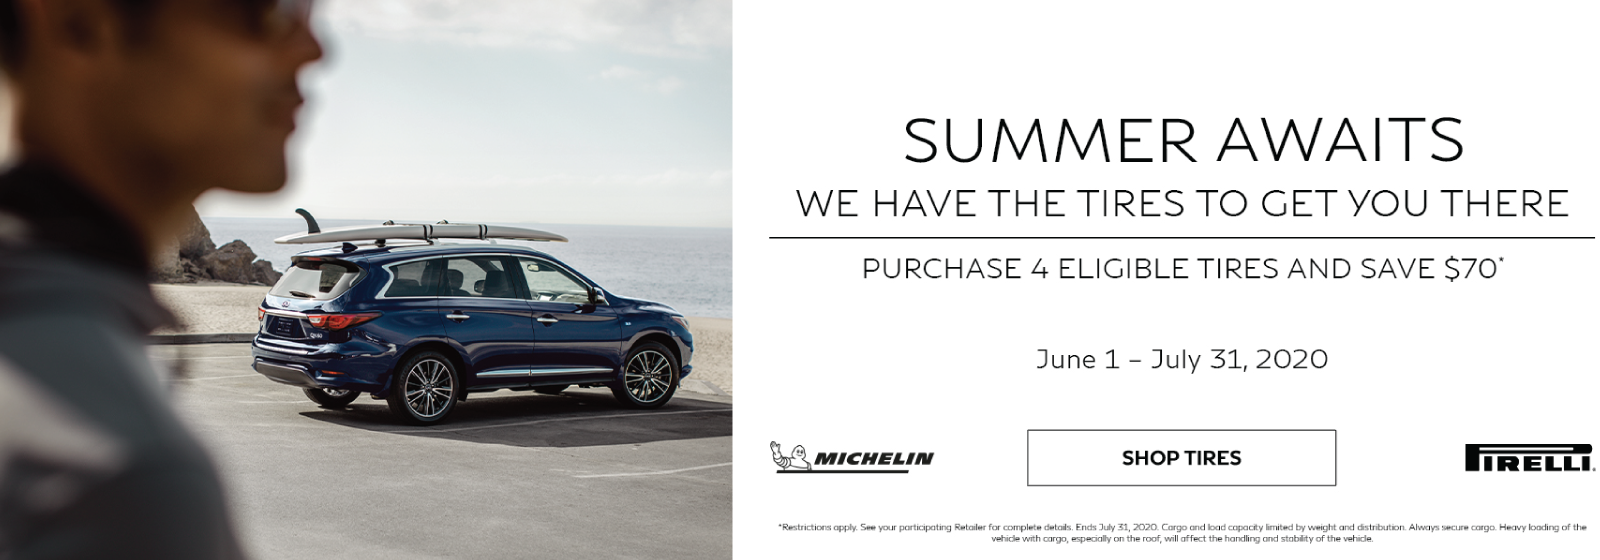 Purchase 4 eligible tires and save $70. See service team for details. Offer ends July 31, 2020.